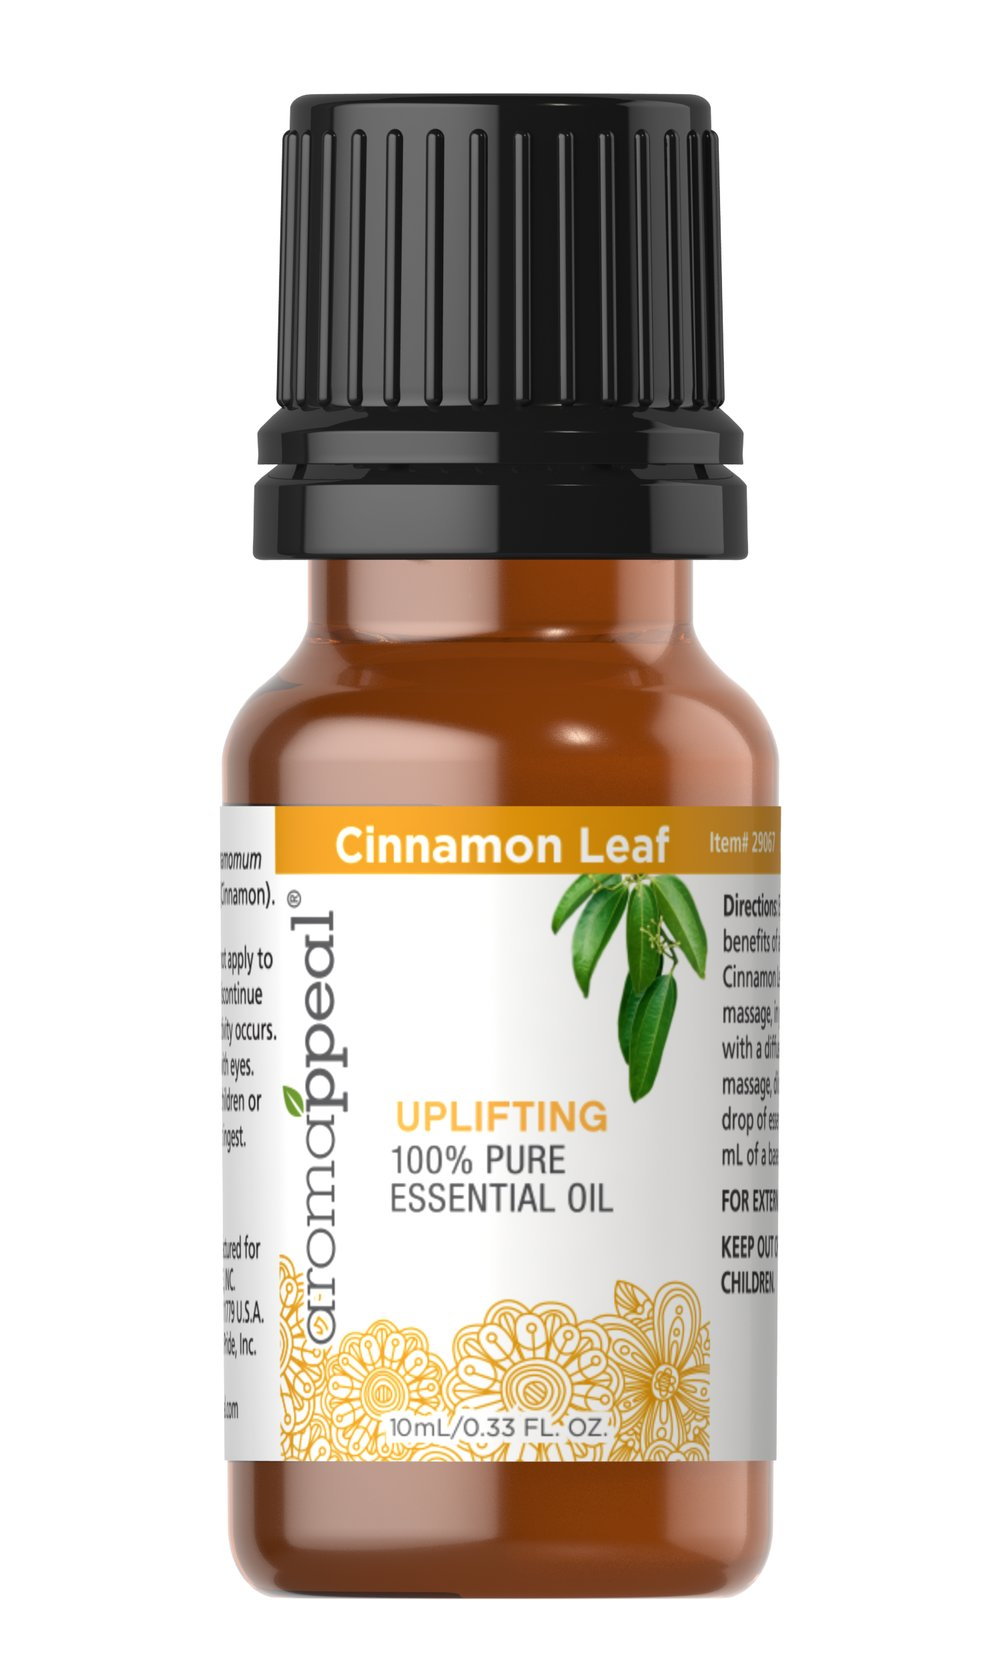 Cinnamon Leaf 100% Pure Essential Oil  10 ml Oil  $6.59